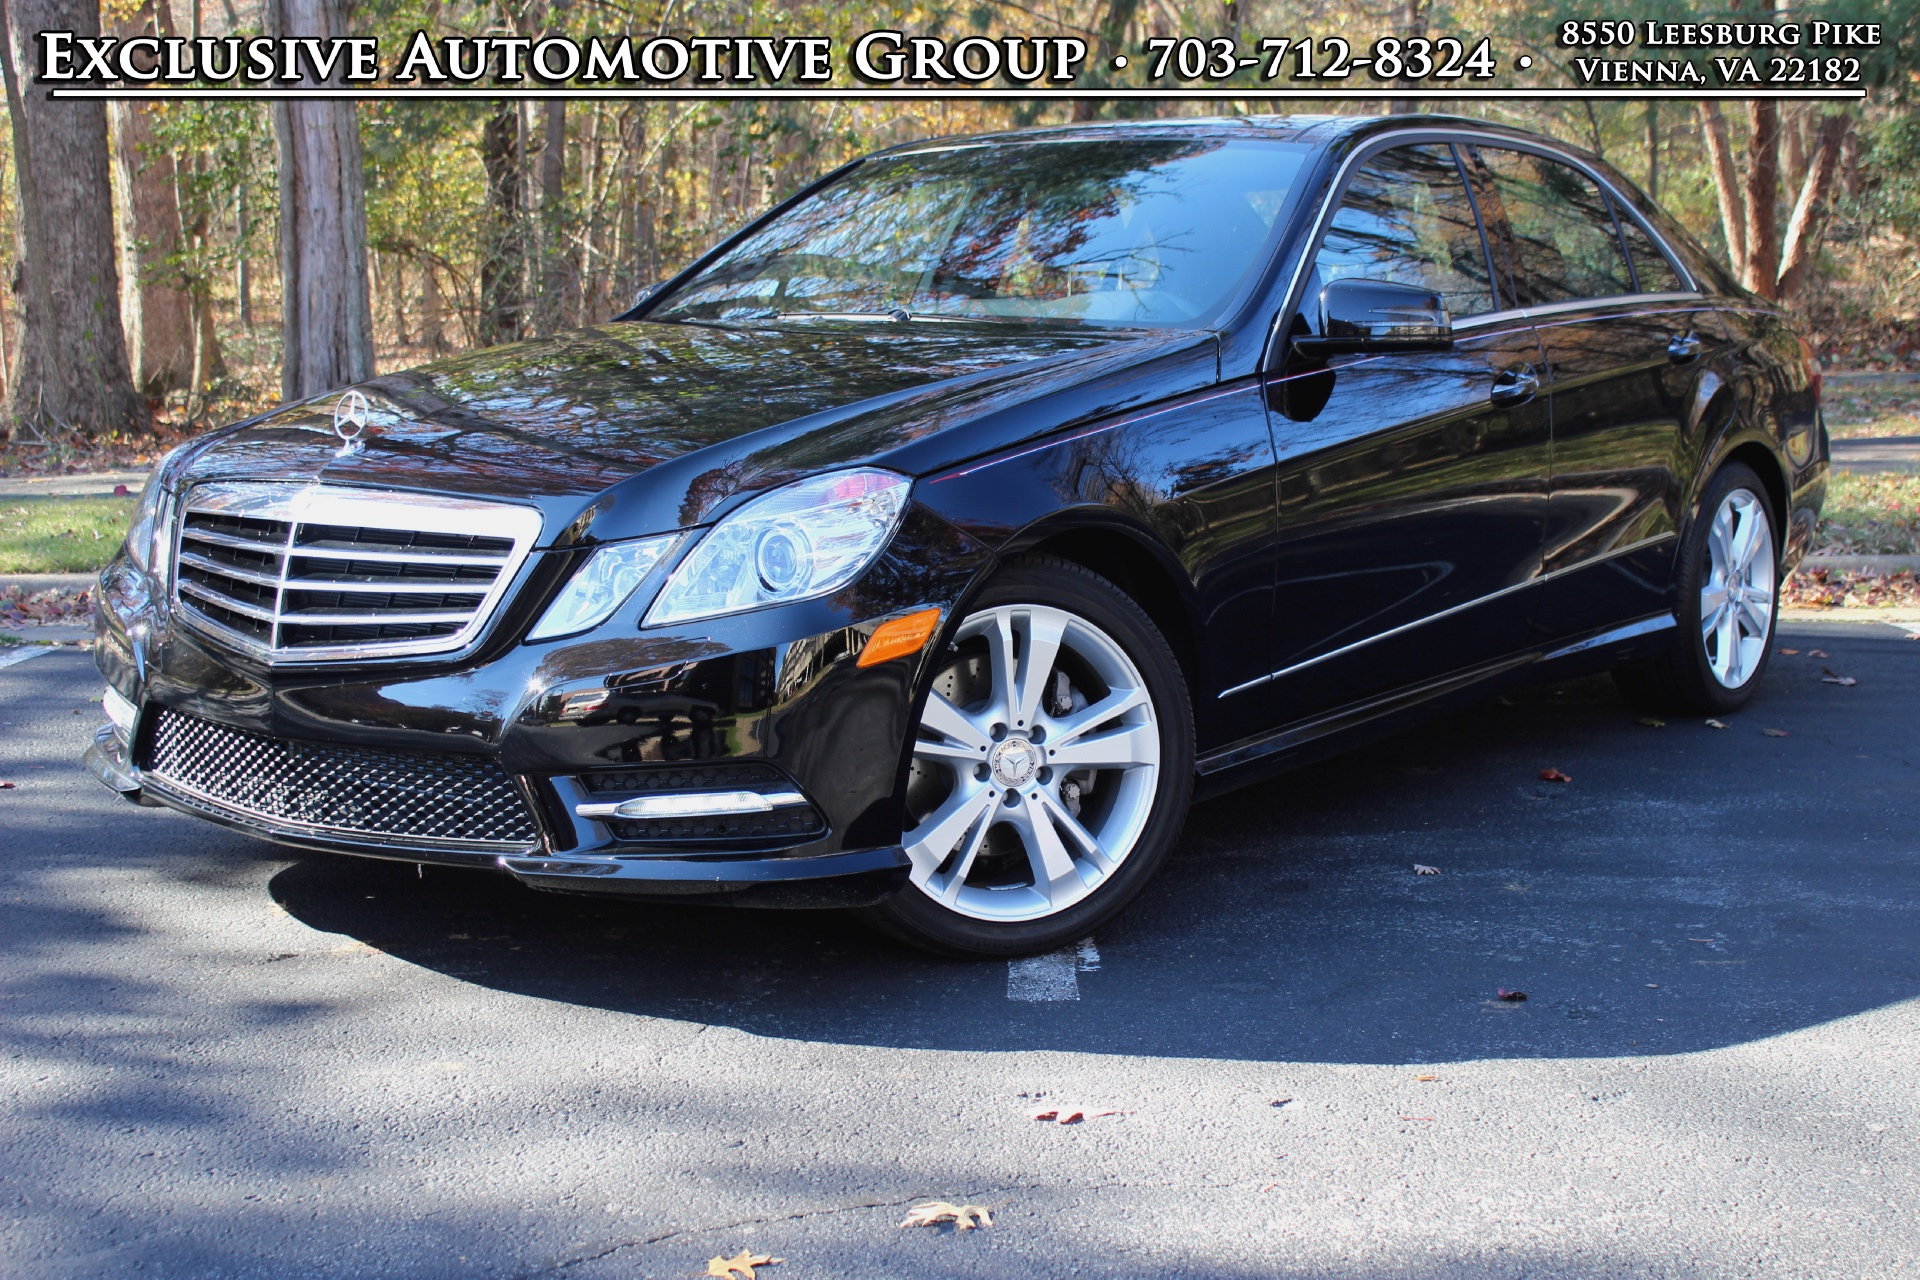 2013 mercedes benz e class stock p685596 for sale near for Tysons mercedes benz